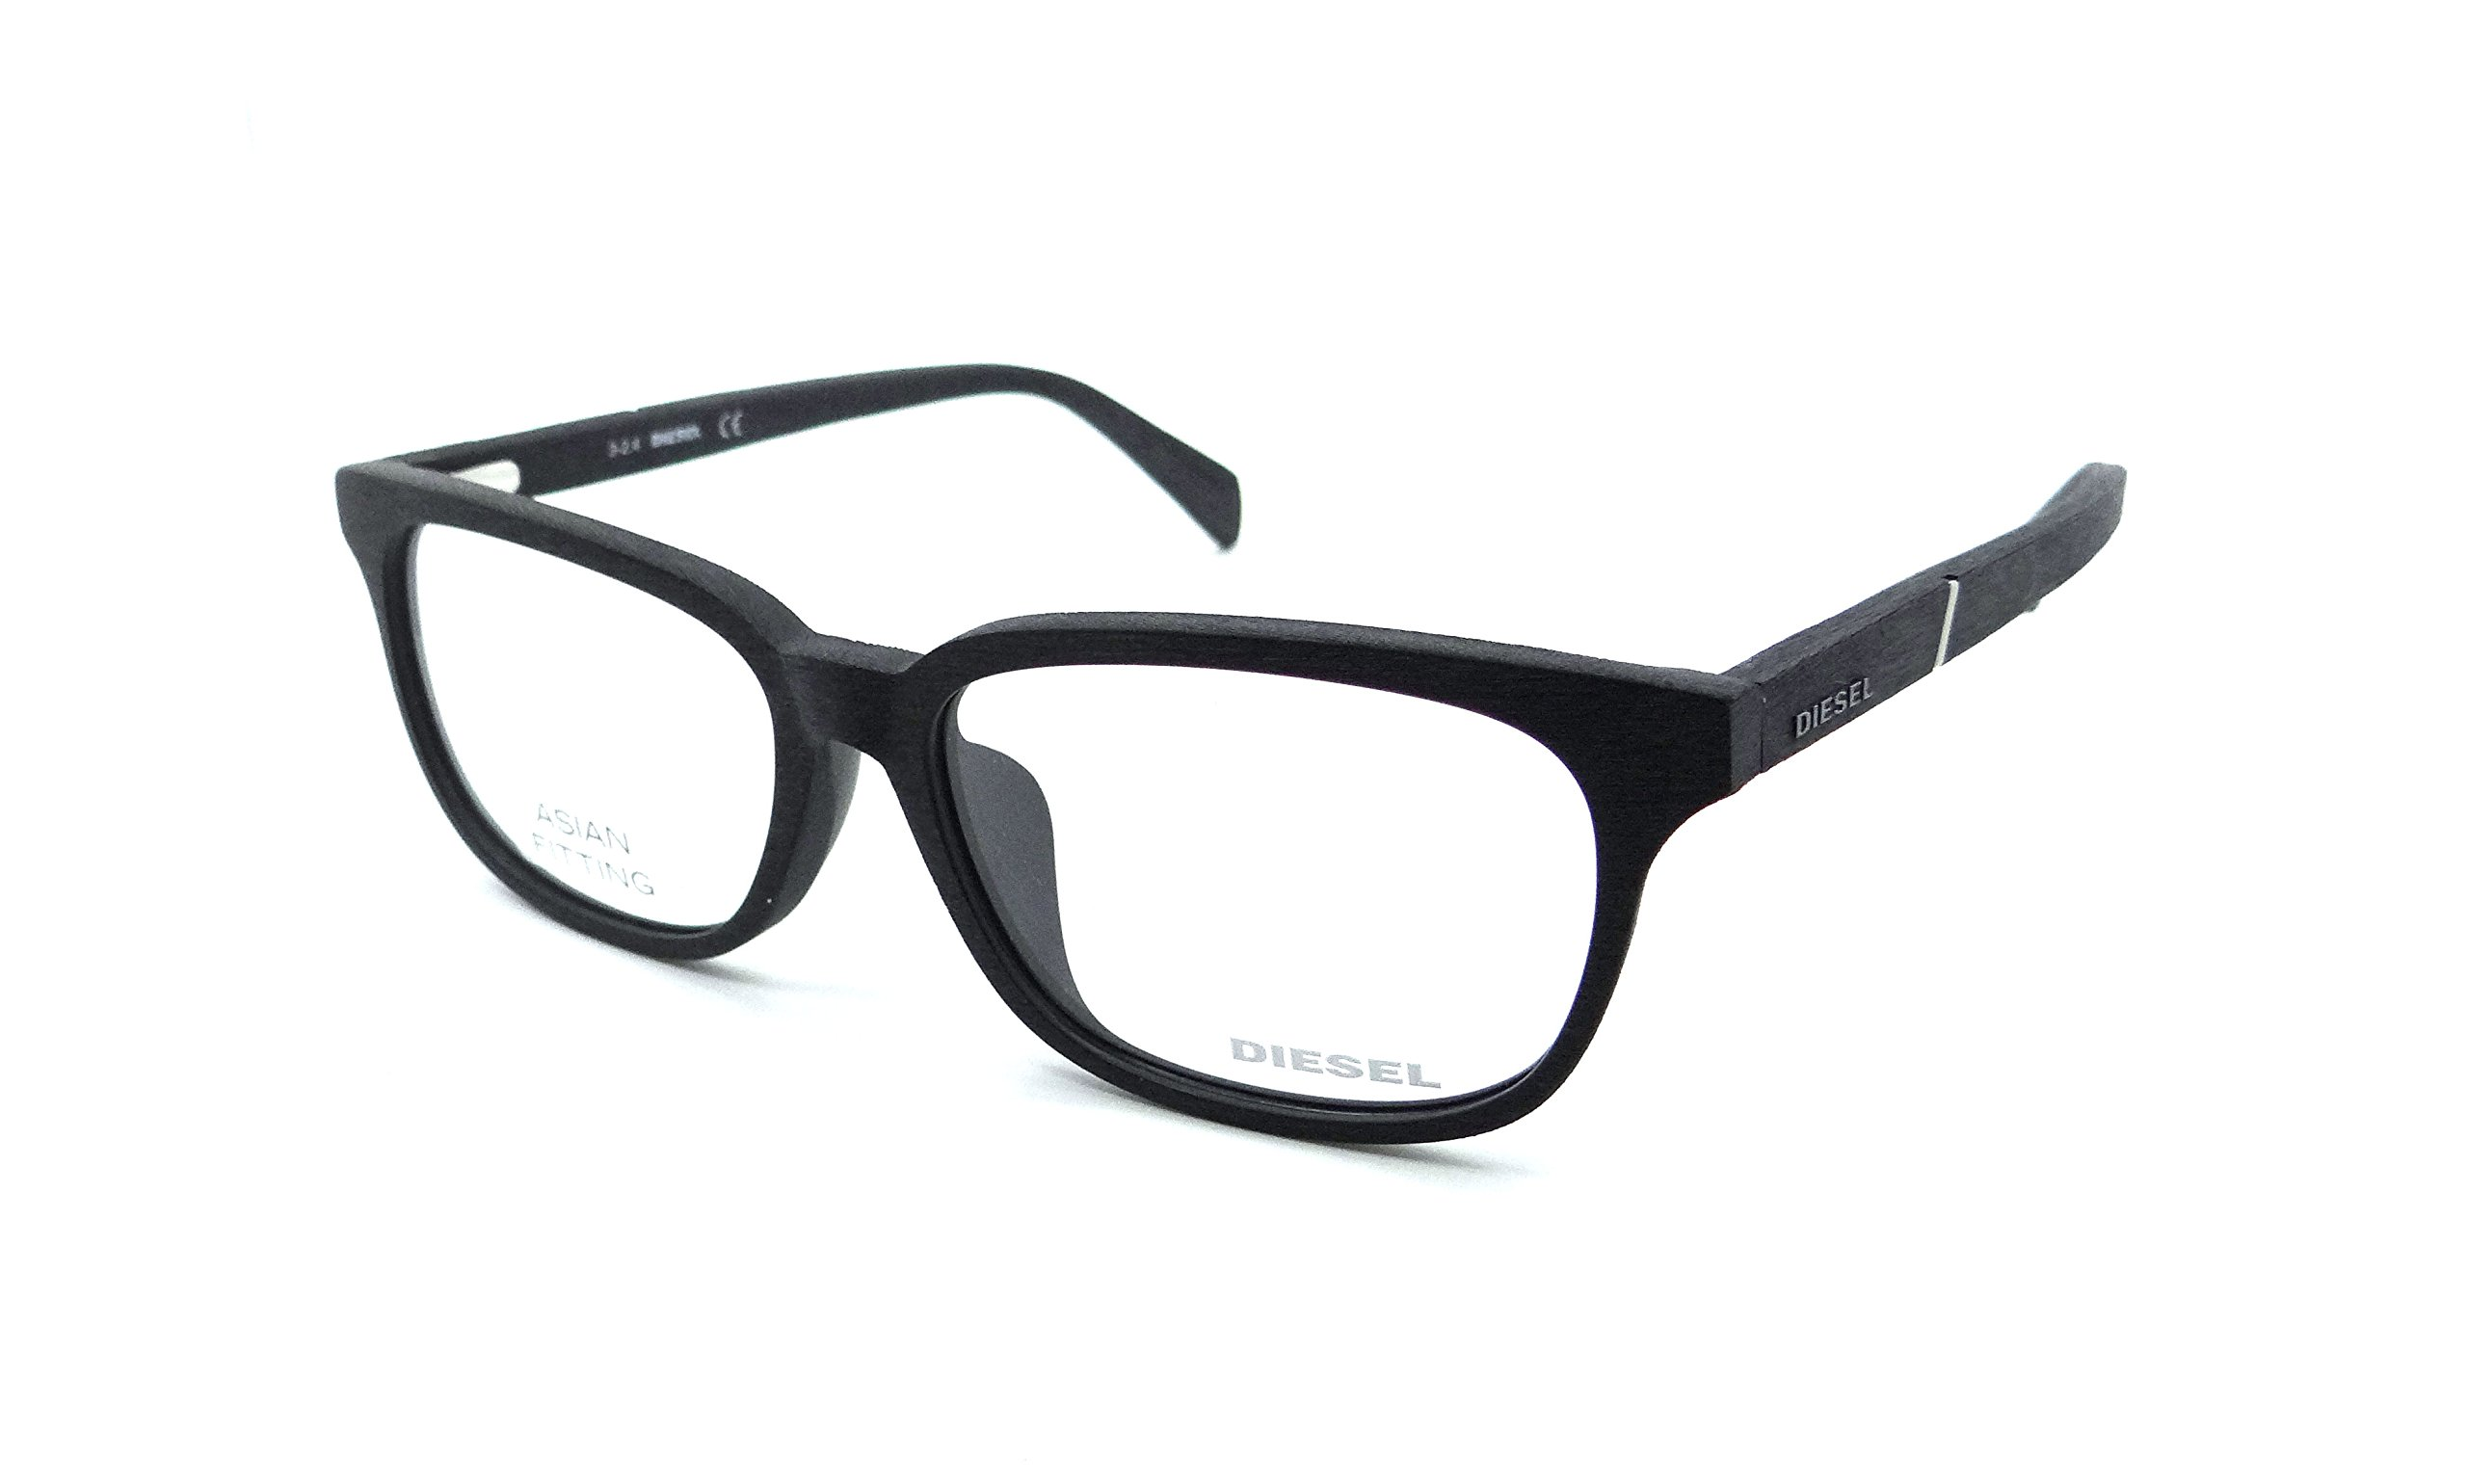 Diesel Rx Eyeglasses Frames DL5129-F 005 57-15-150 Black Wood Grain Asian Fit